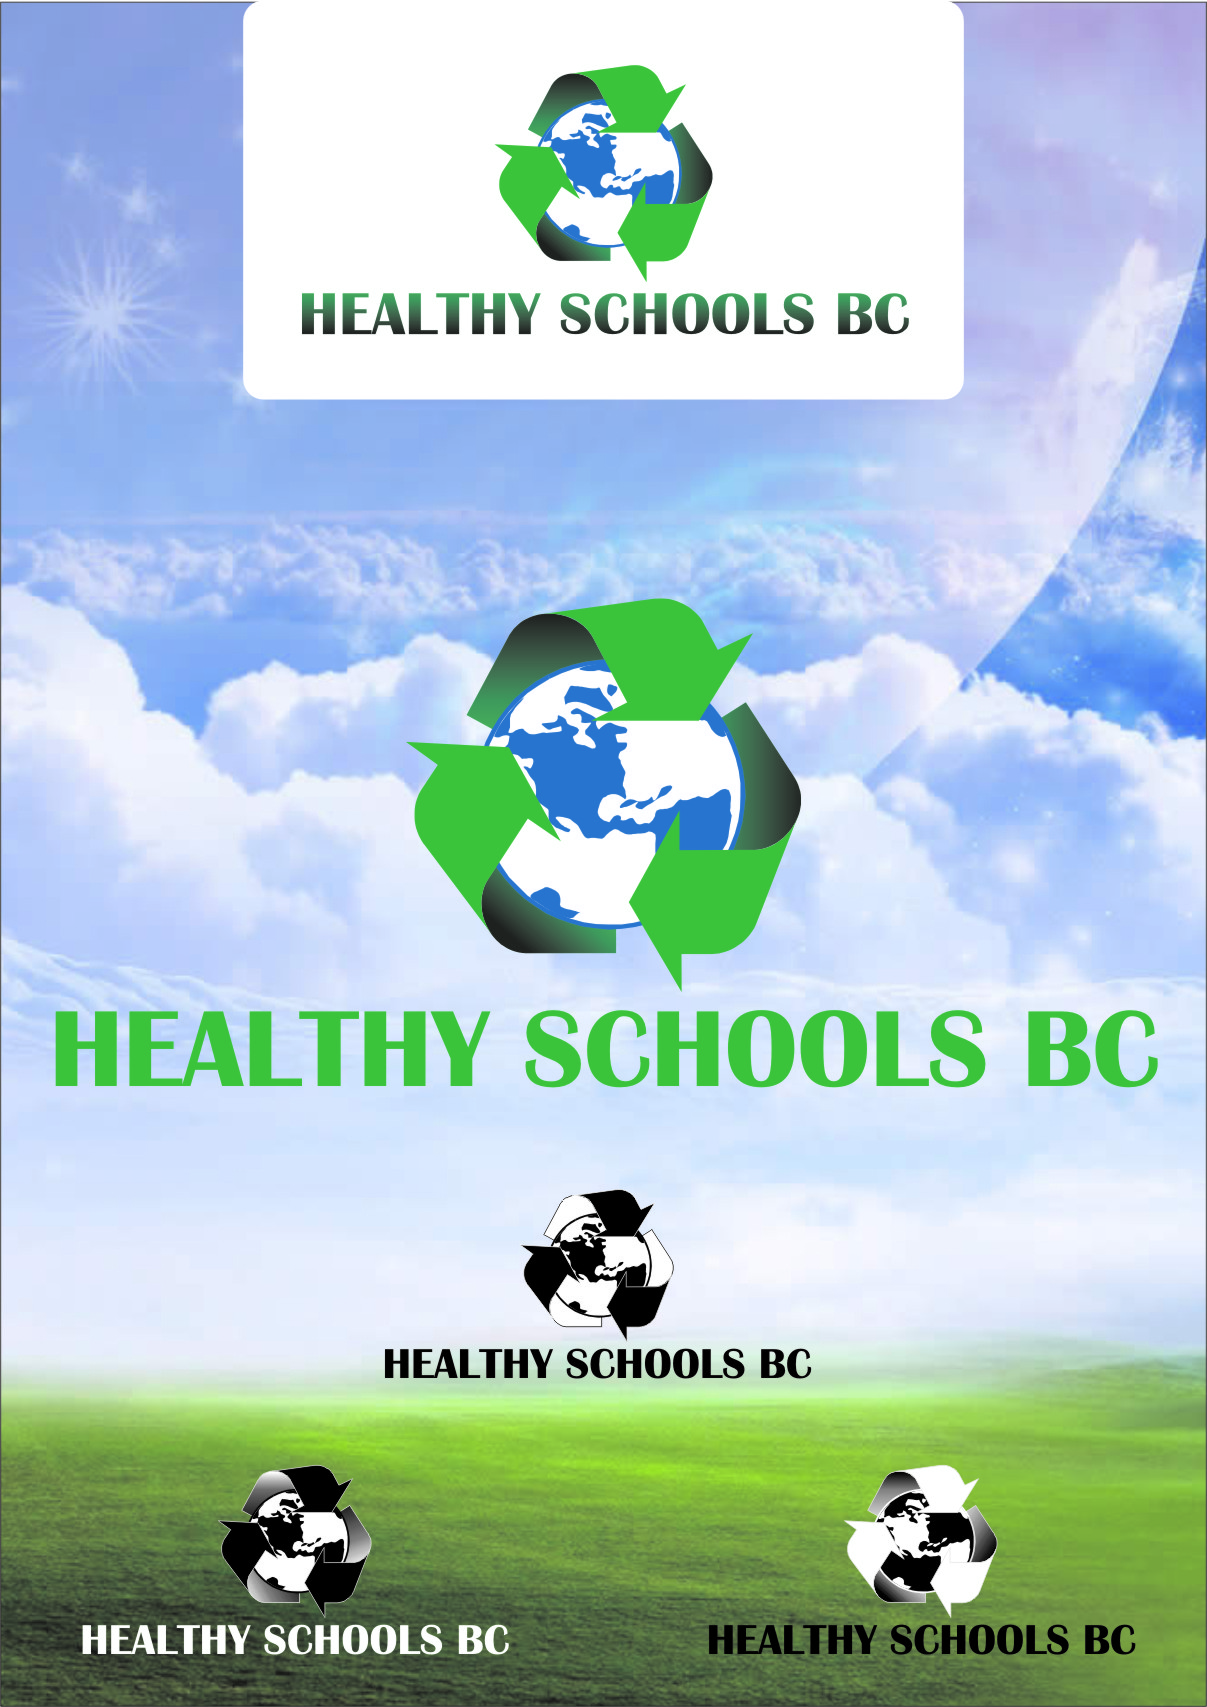 Logo Design by RasYa Muhammad Athaya - Entry No. 237 in the Logo Design Contest SImple, Creative and Clean Logo Design for Healthy Schools British Columbia, Canada.